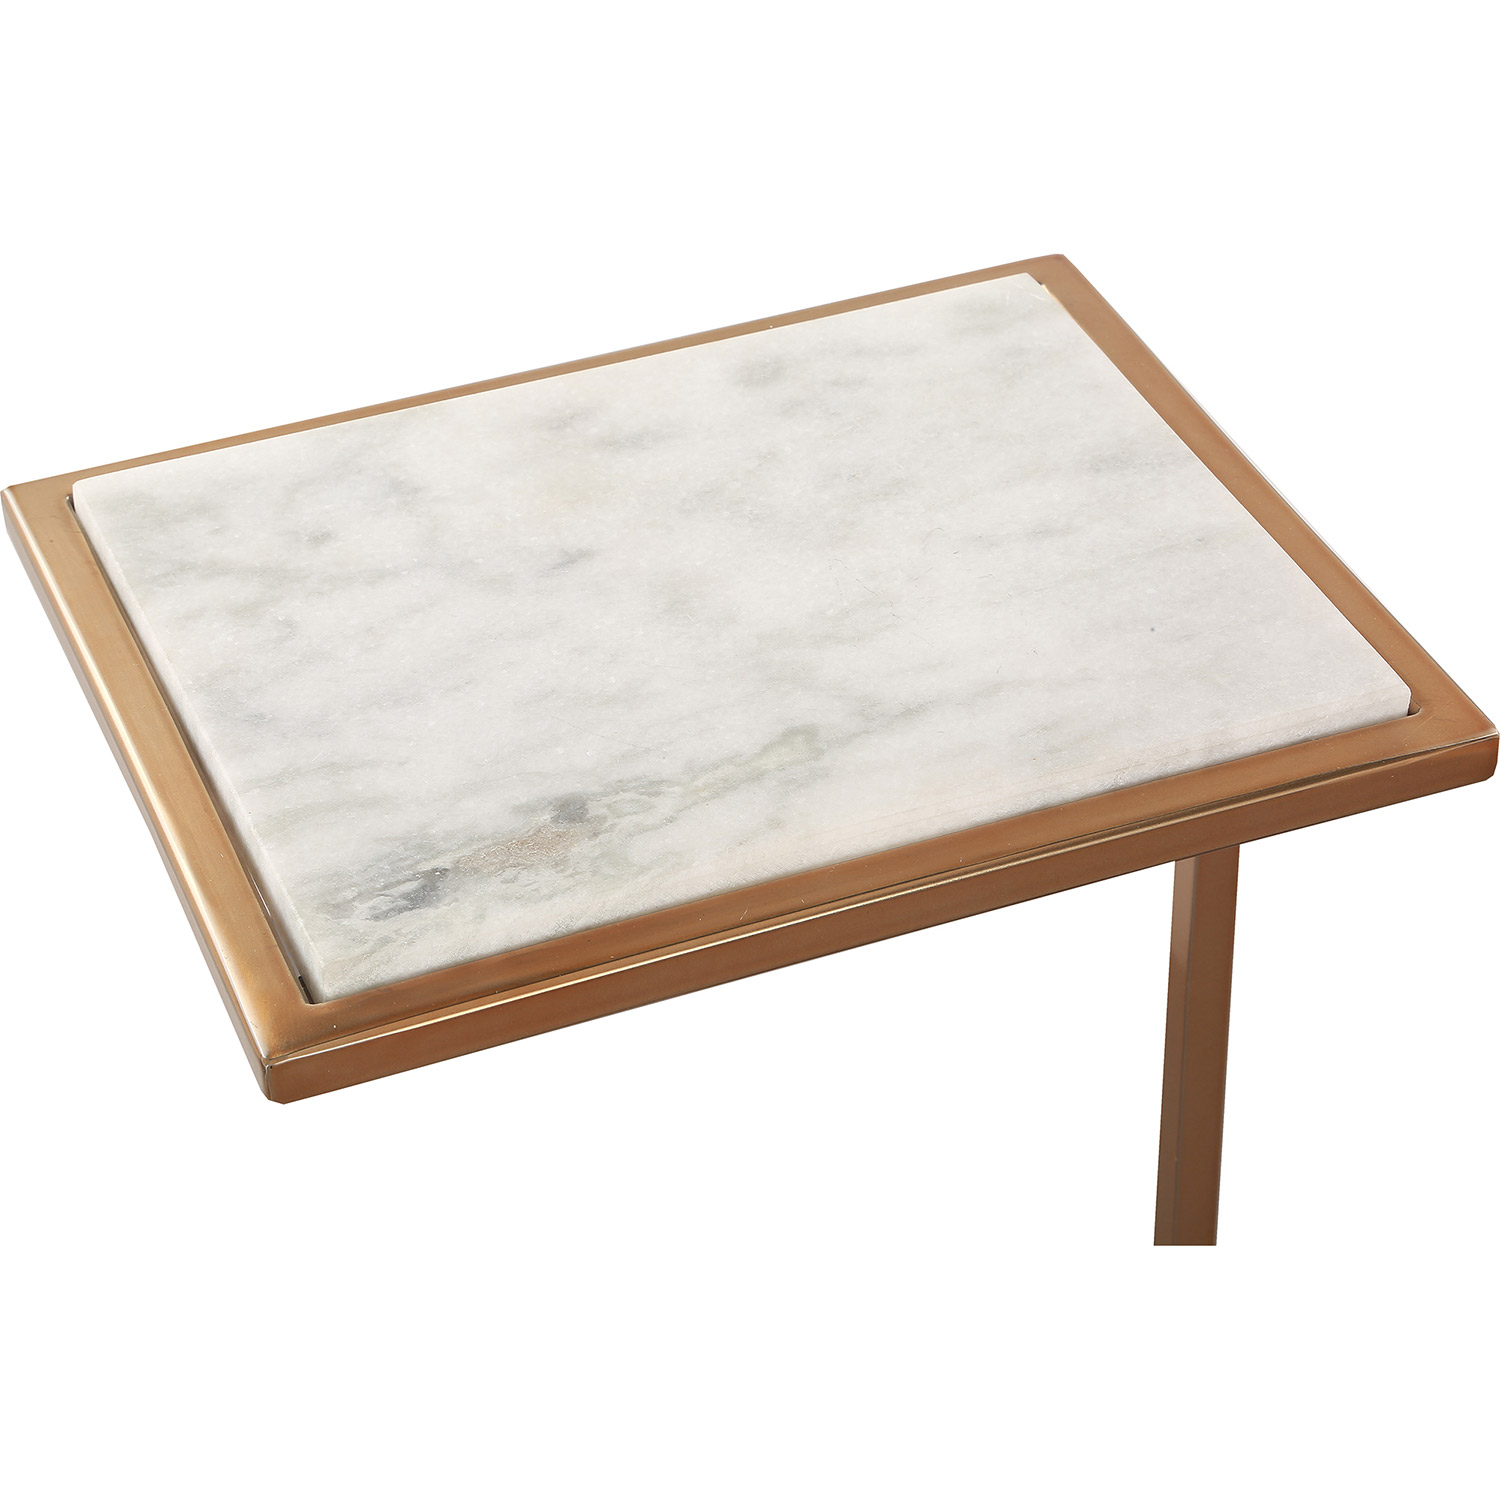 Ren-Wil Delma Accent Table - White Marble/Brass